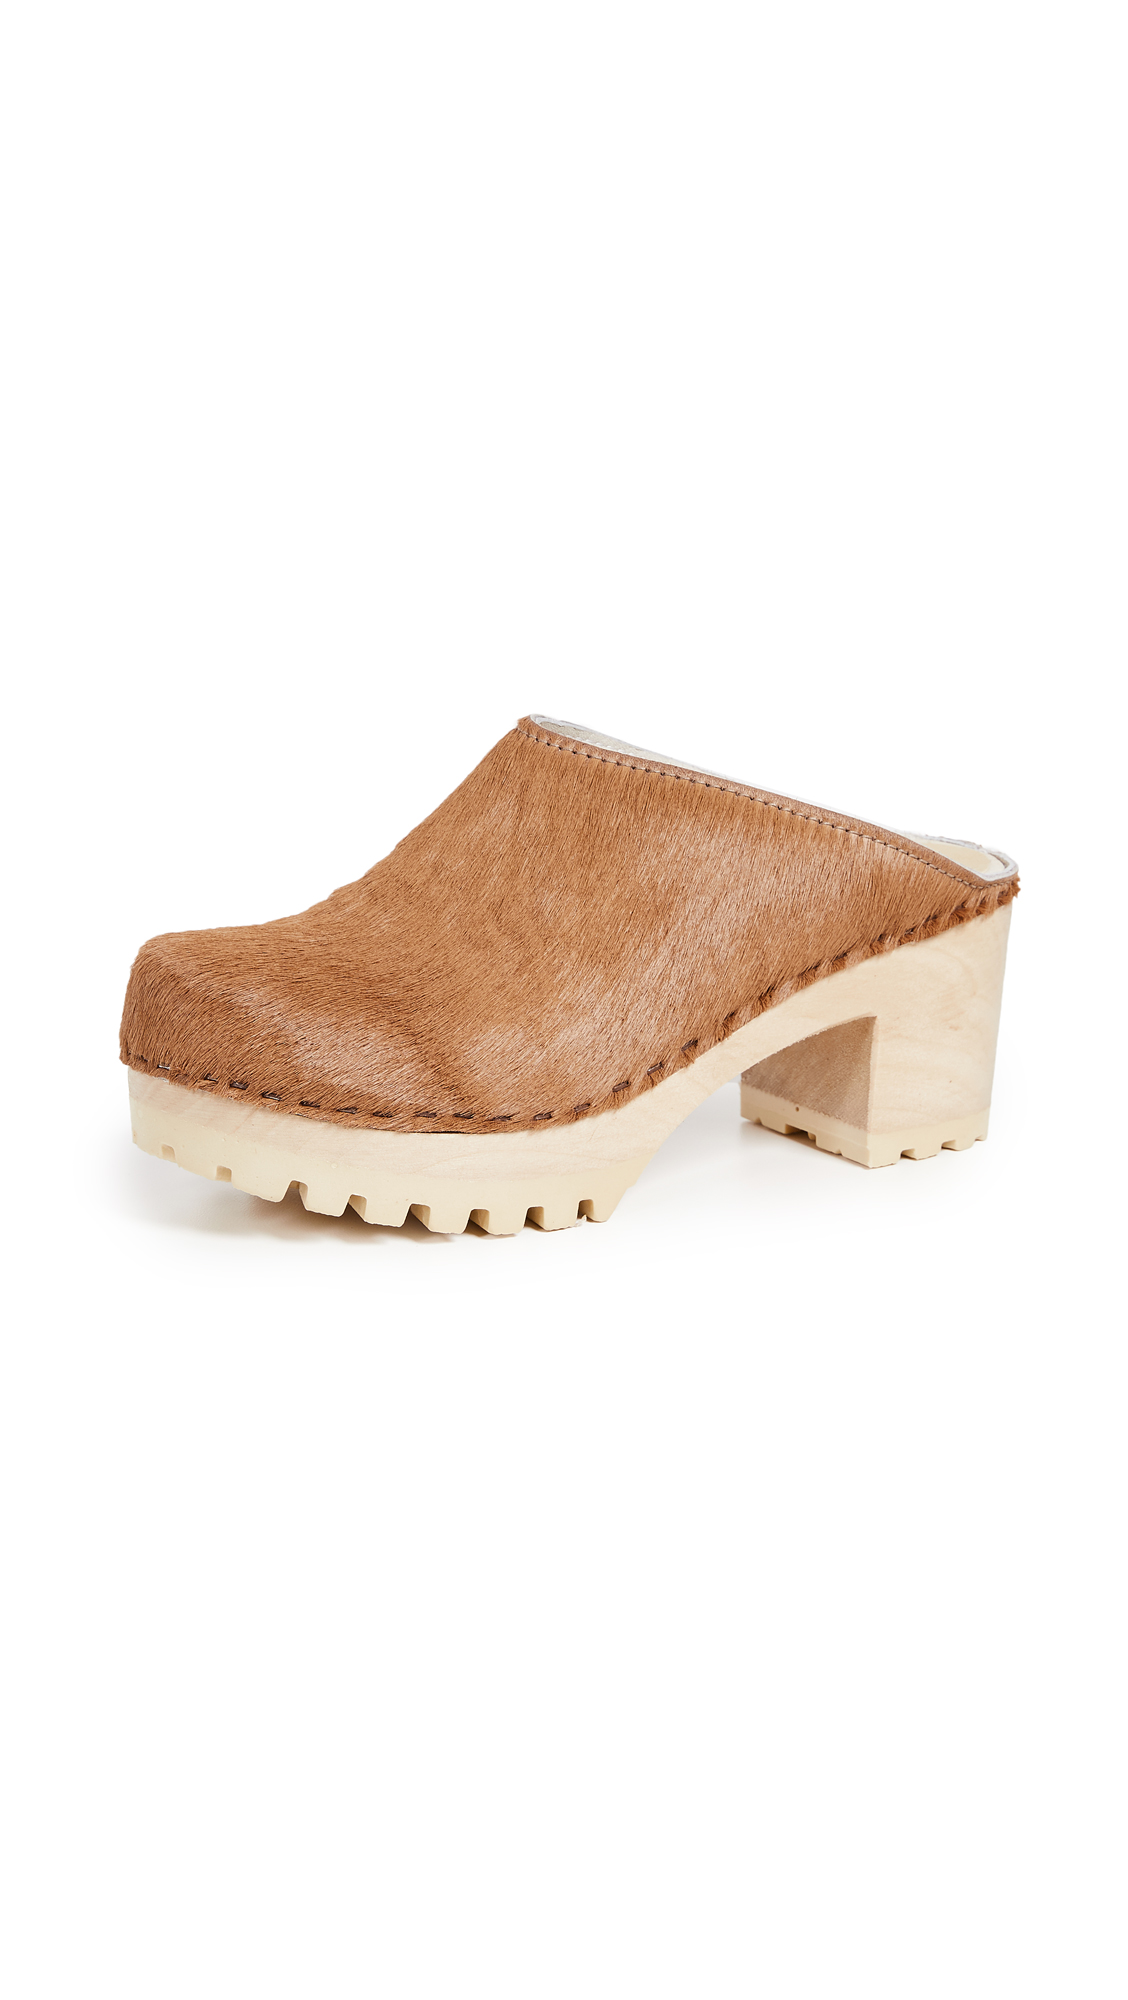 No.6 New School Tread Clog - Caramel